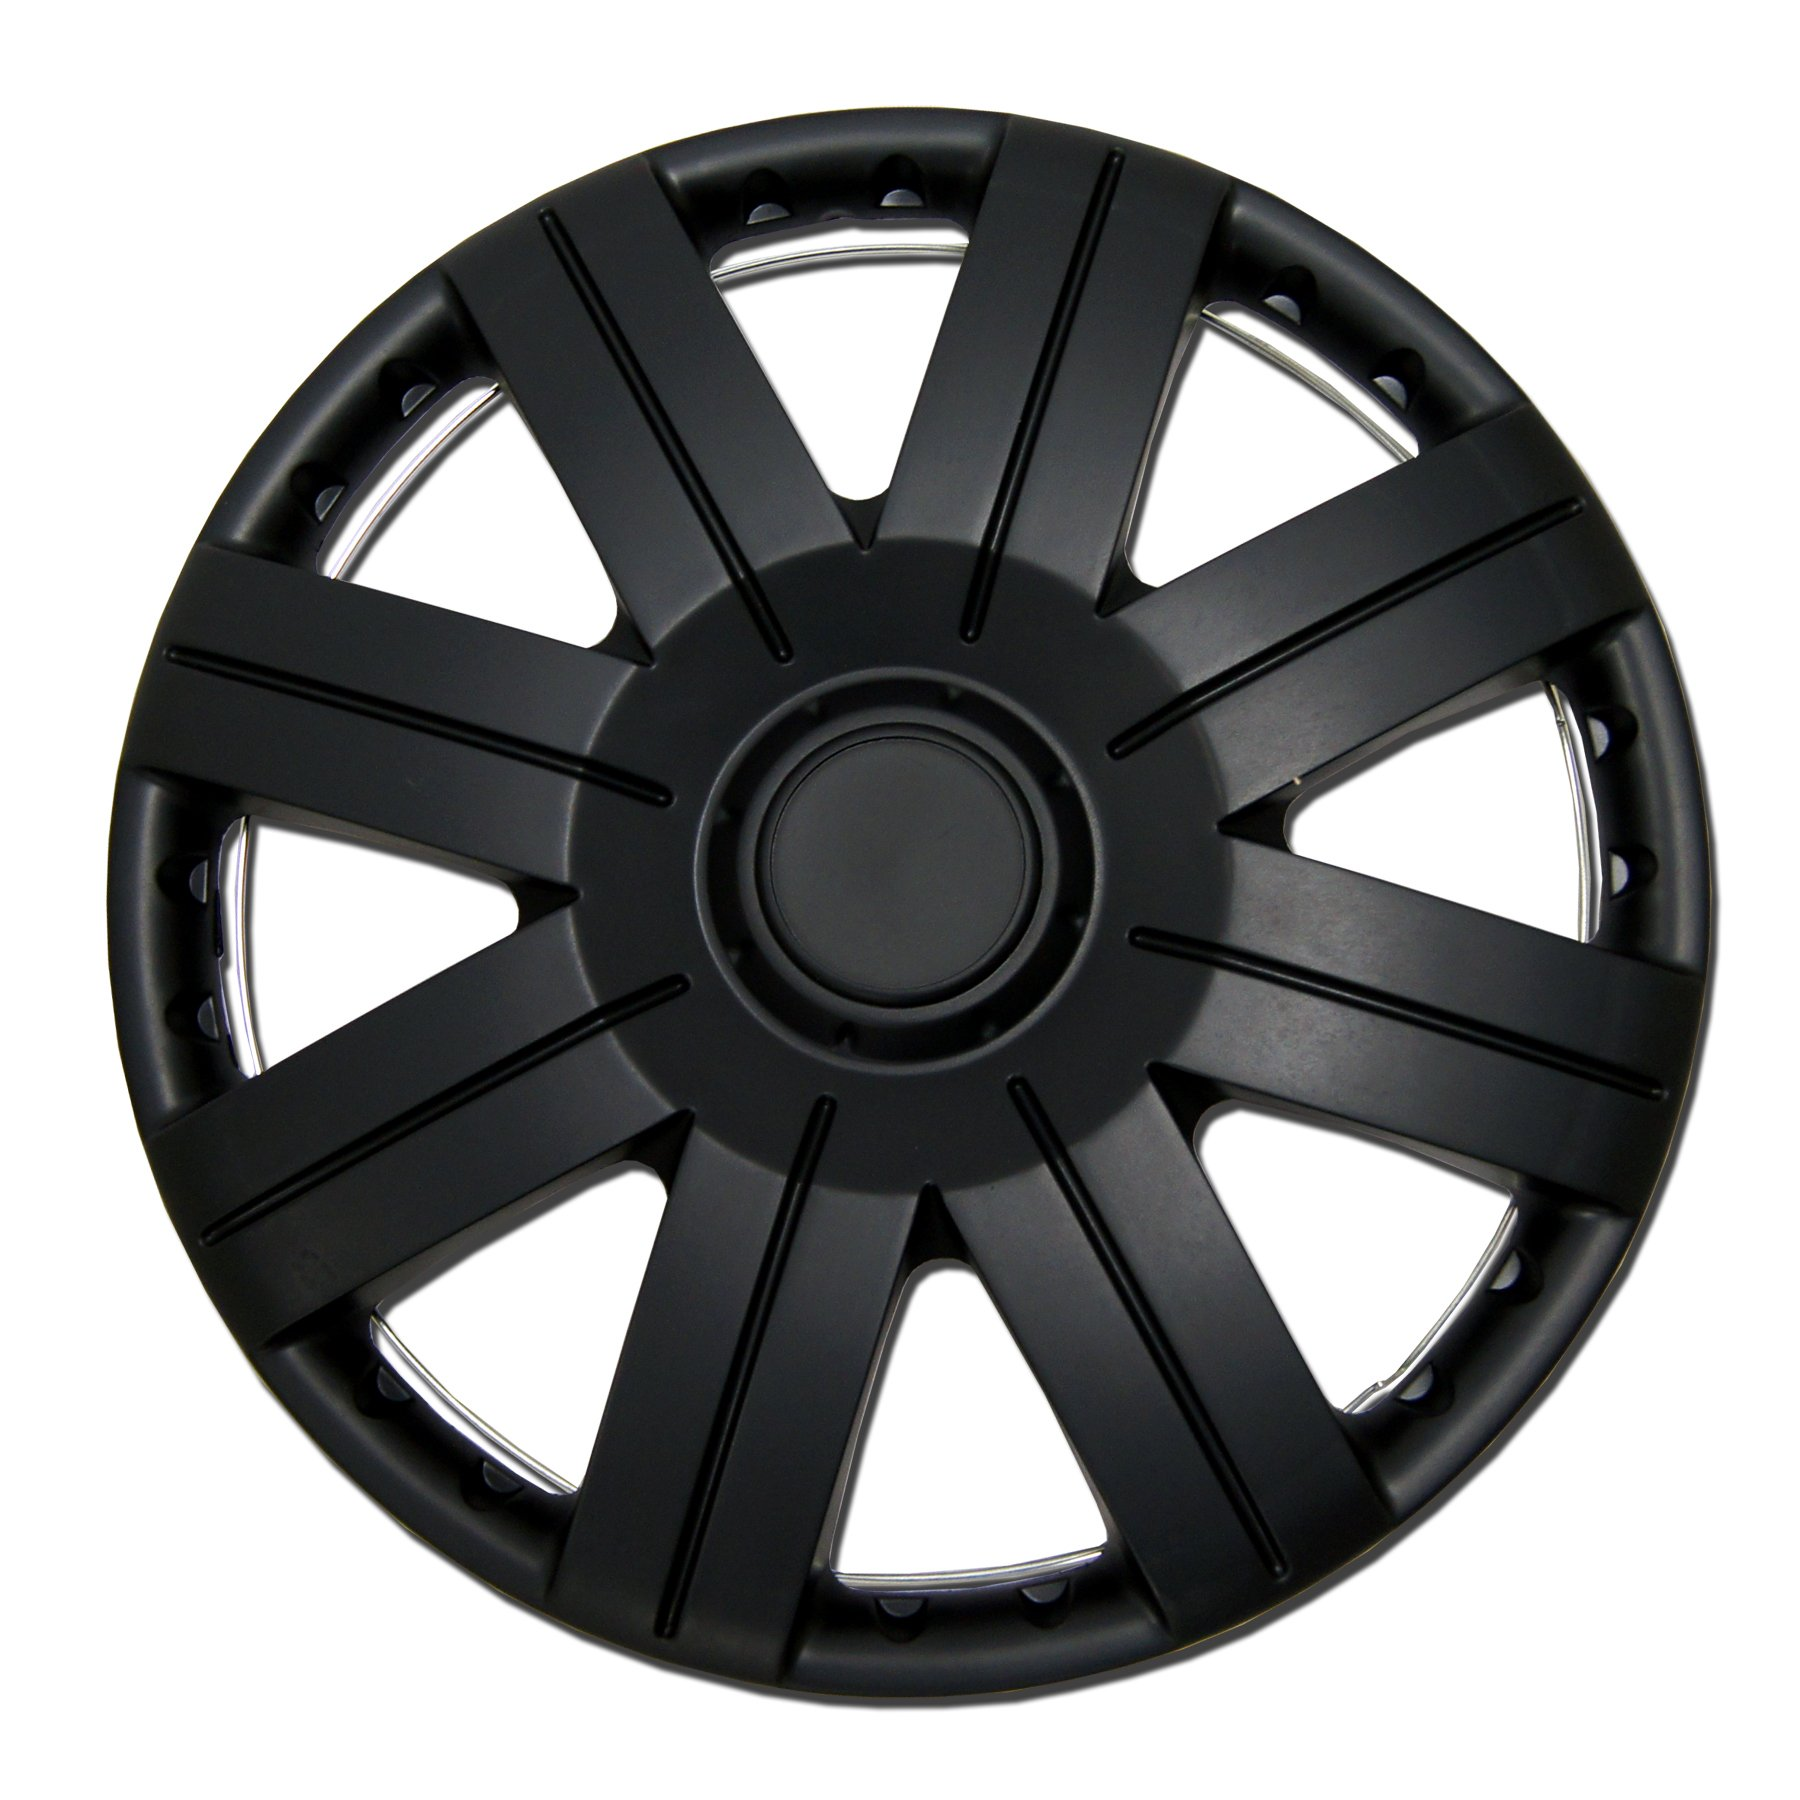 TuningPros WSC-613B15 Hubcaps Wheel Skin Cover 15-Inches Matte Black Set of 4 by TuningPros (Image #1)